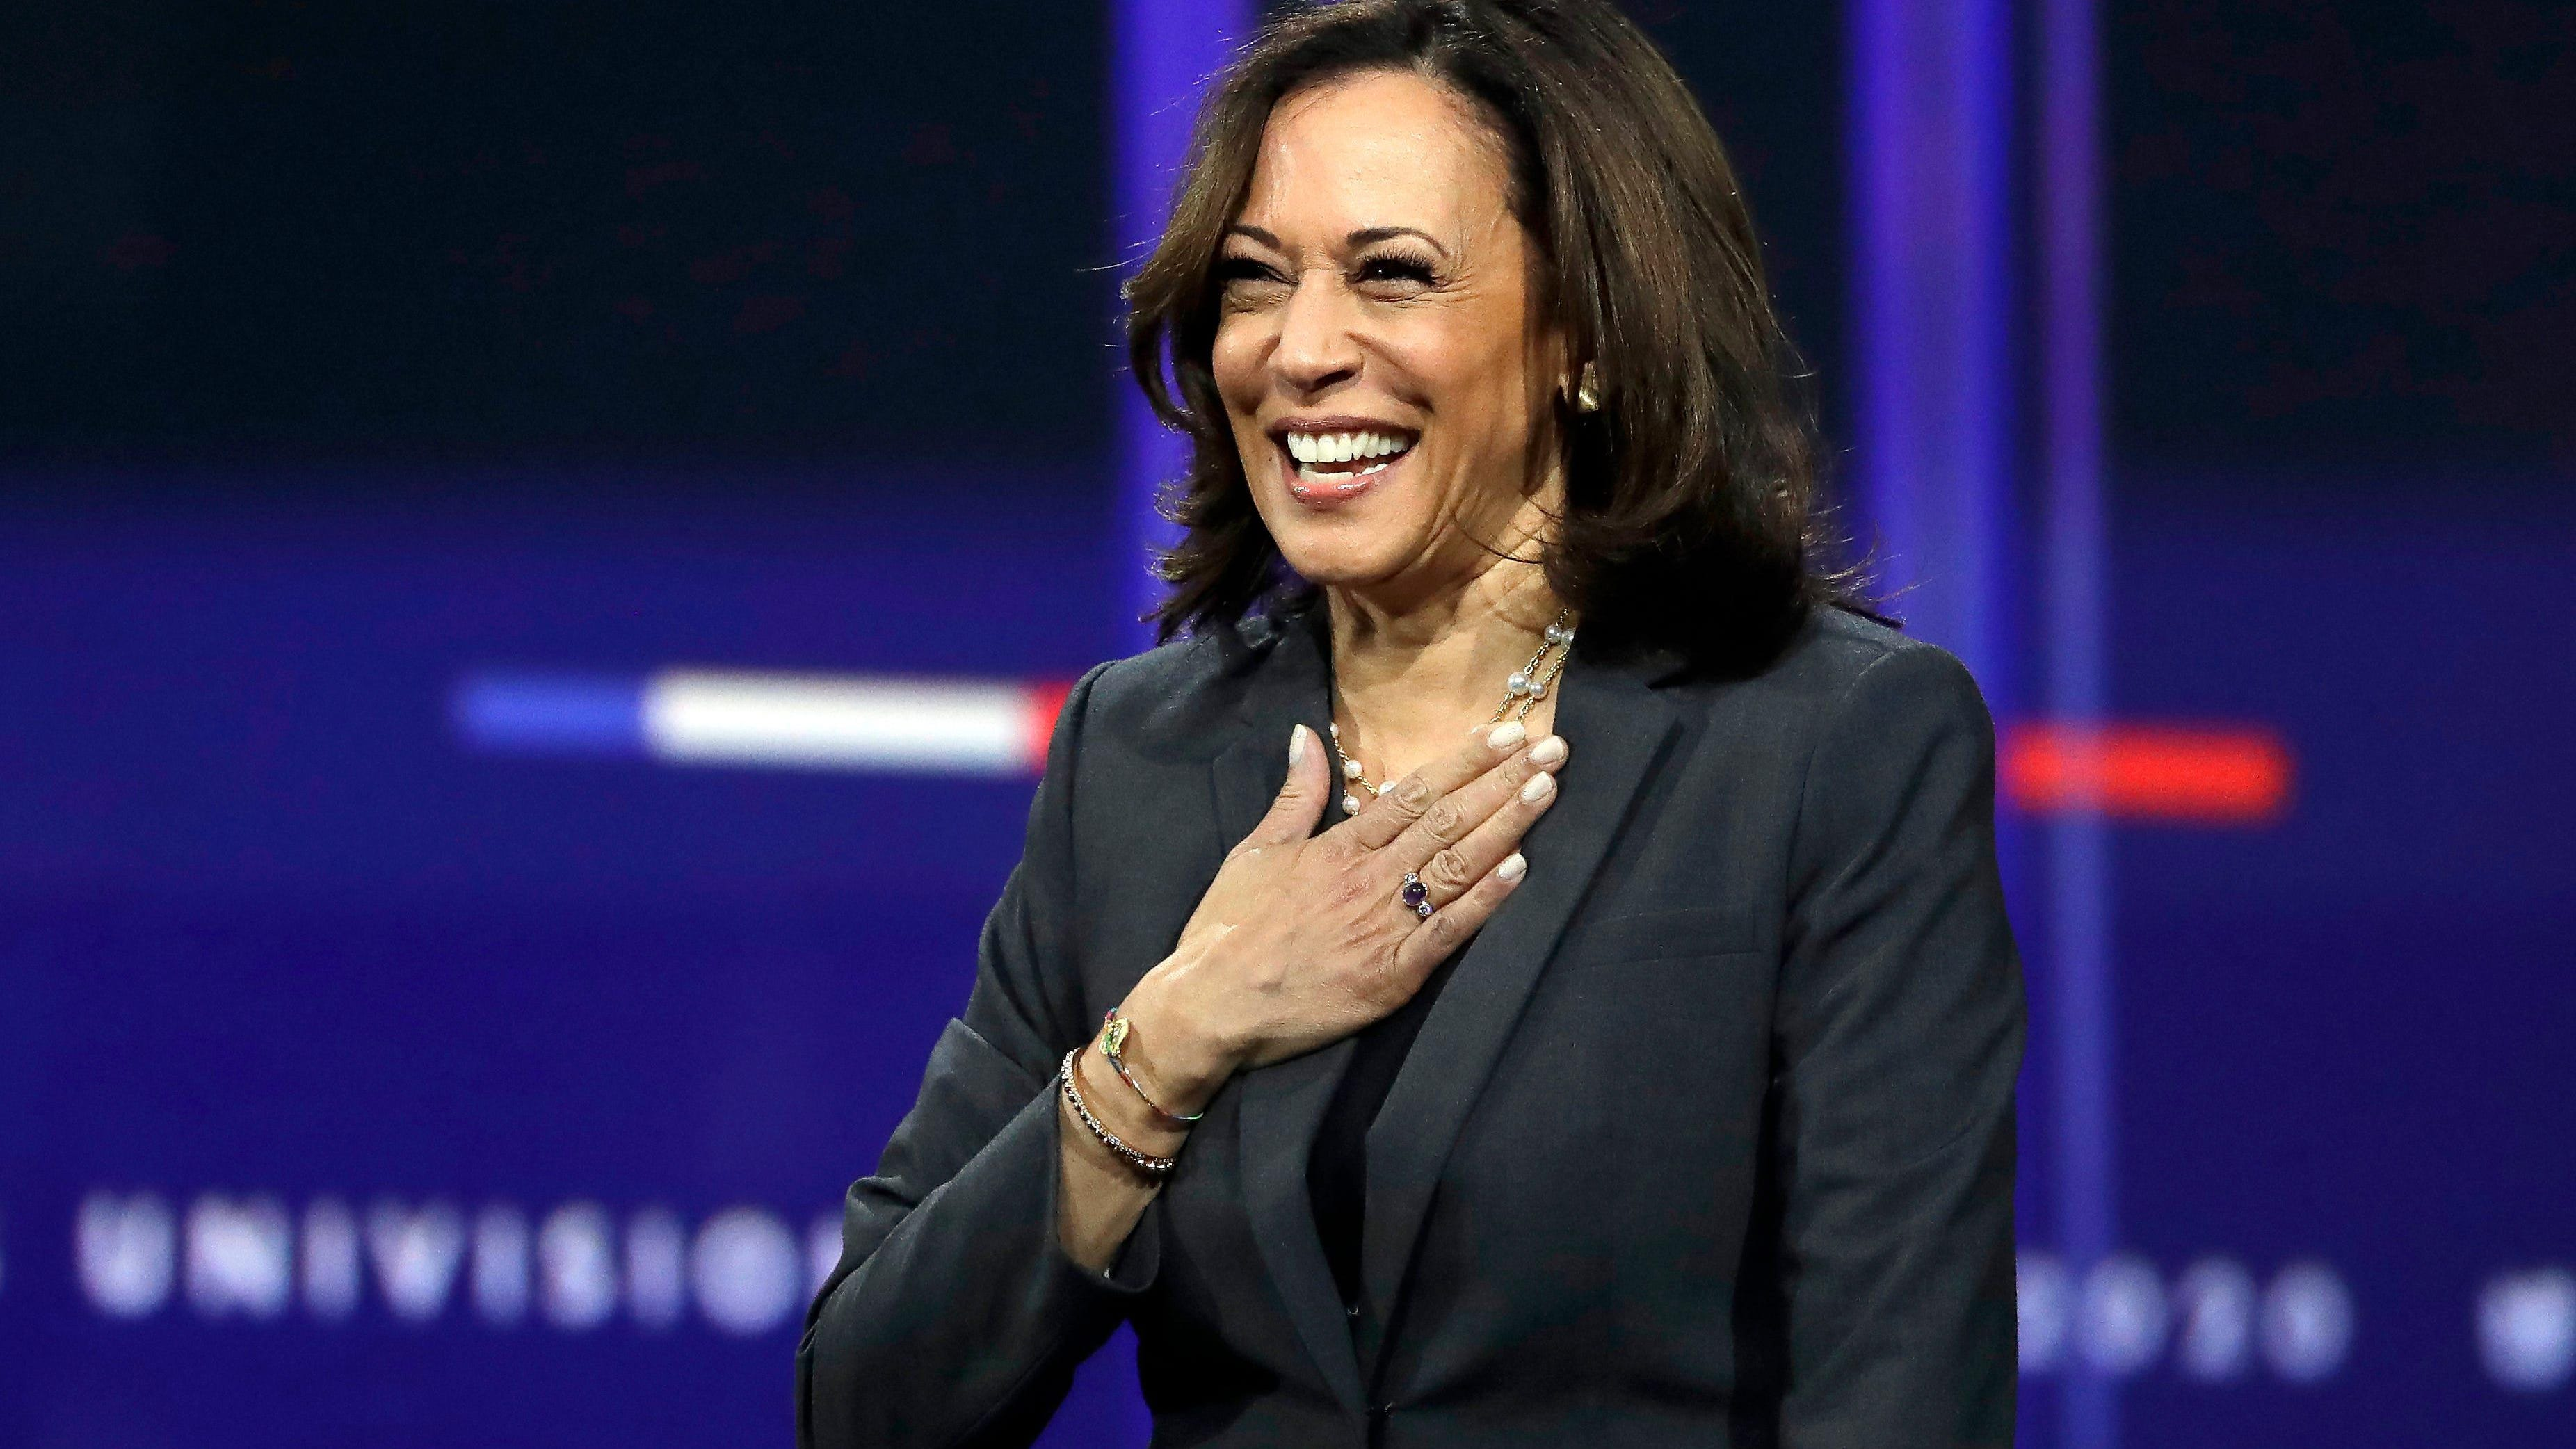 That S The Ticket Why Did Joe Biden Picks Kamala Harris As His 2020 Vice Presidential Running Mate Balance